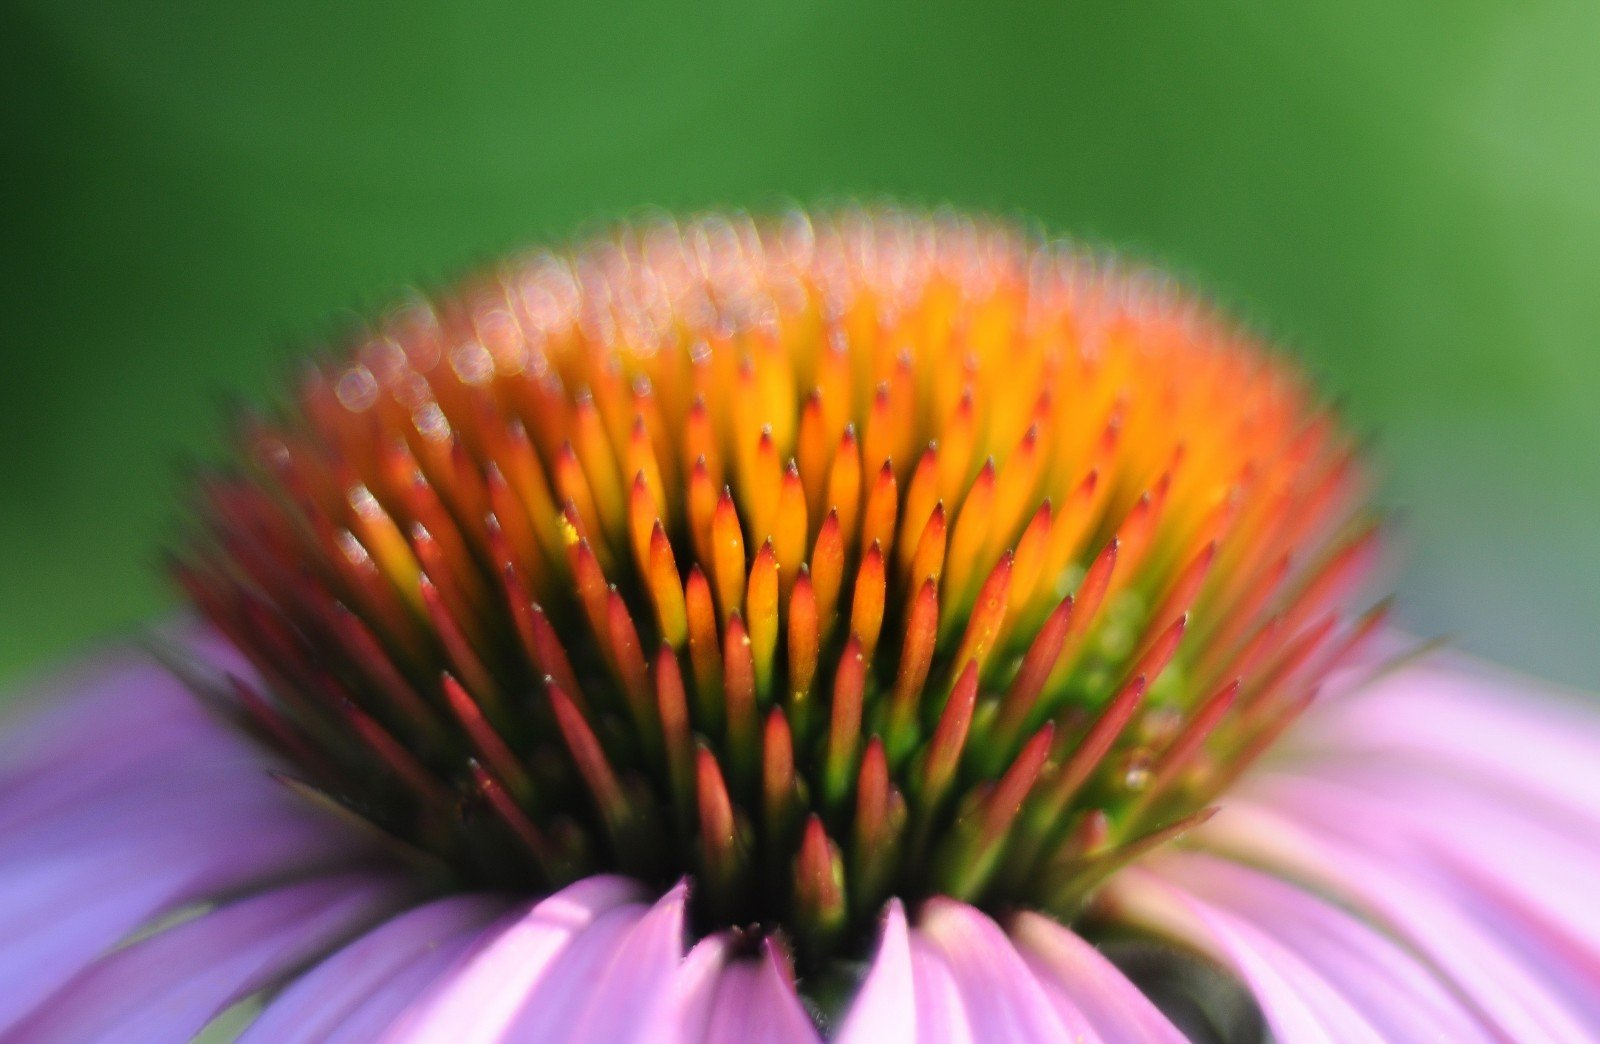 close-up-view-flower-close-to-coneflowers.jpg